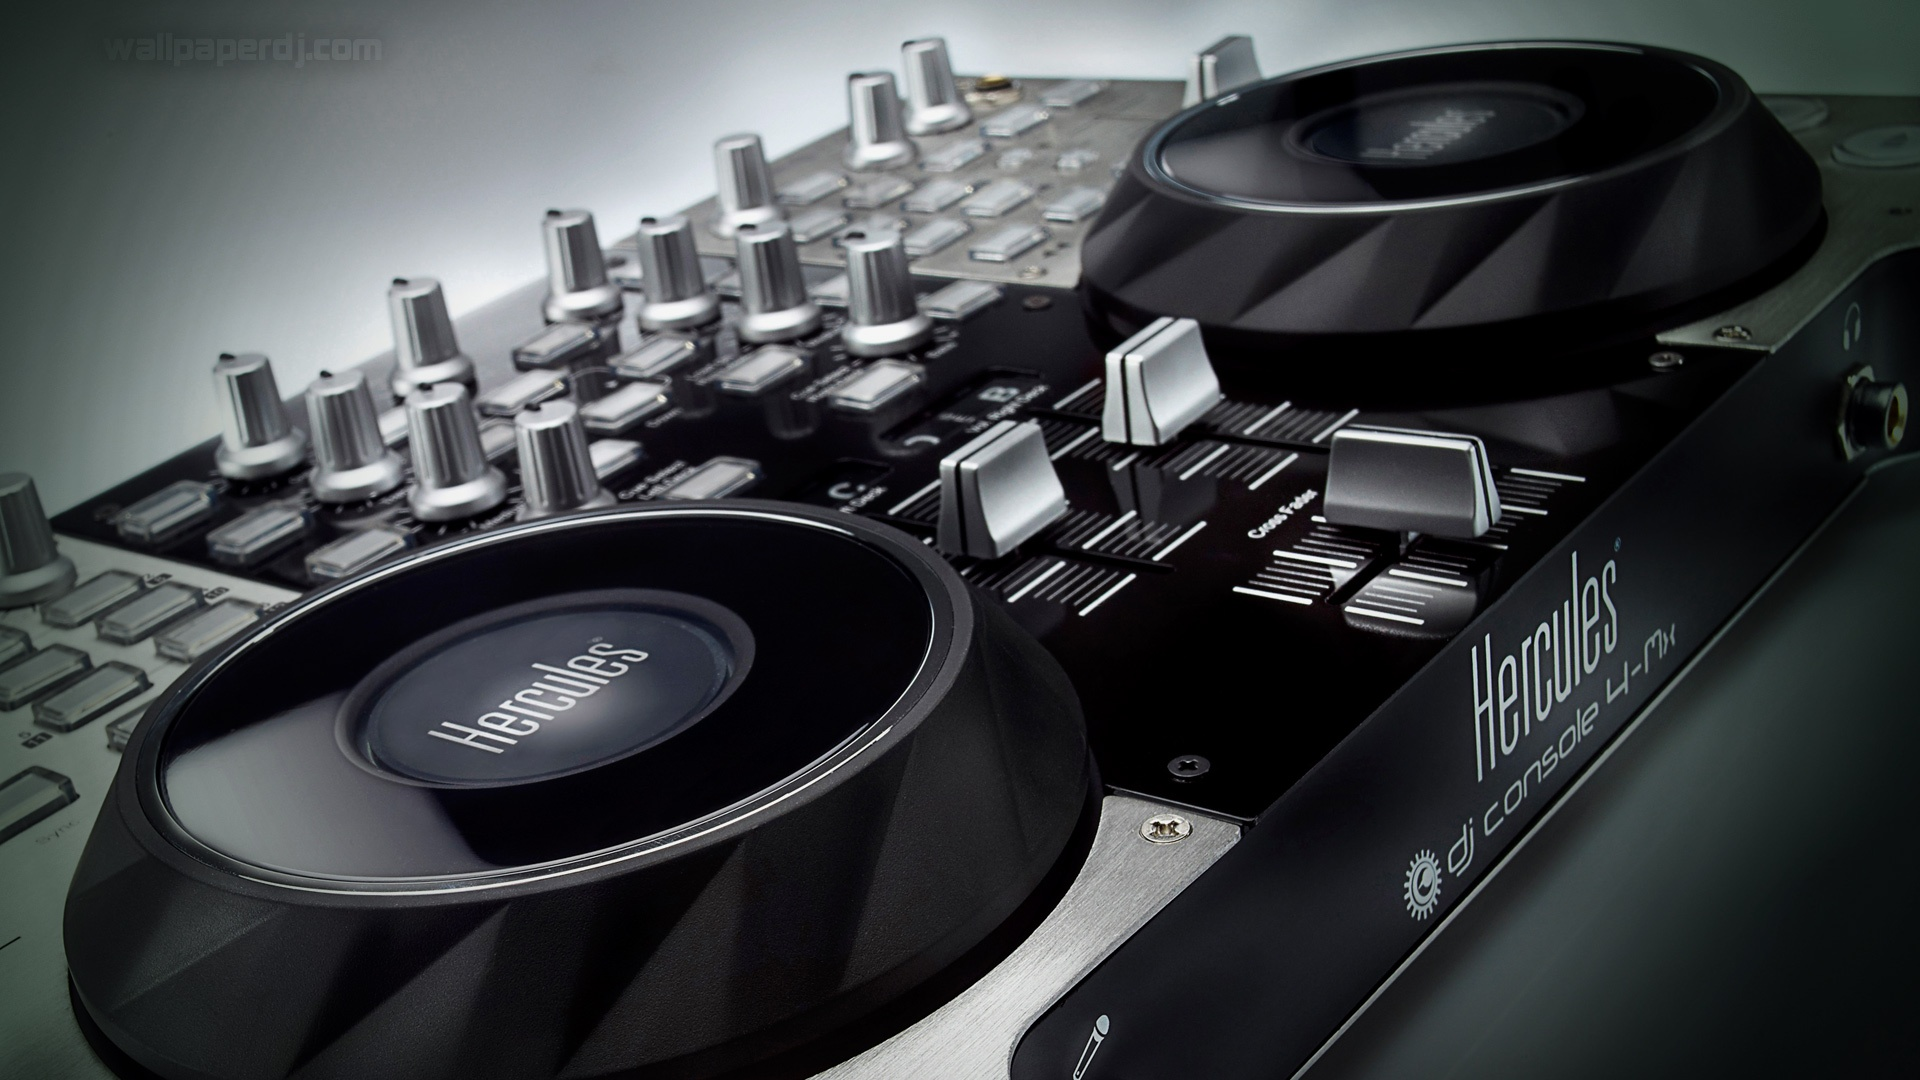 Wallpapers For Dj Mixer Wallpapers Hd 1920x1080